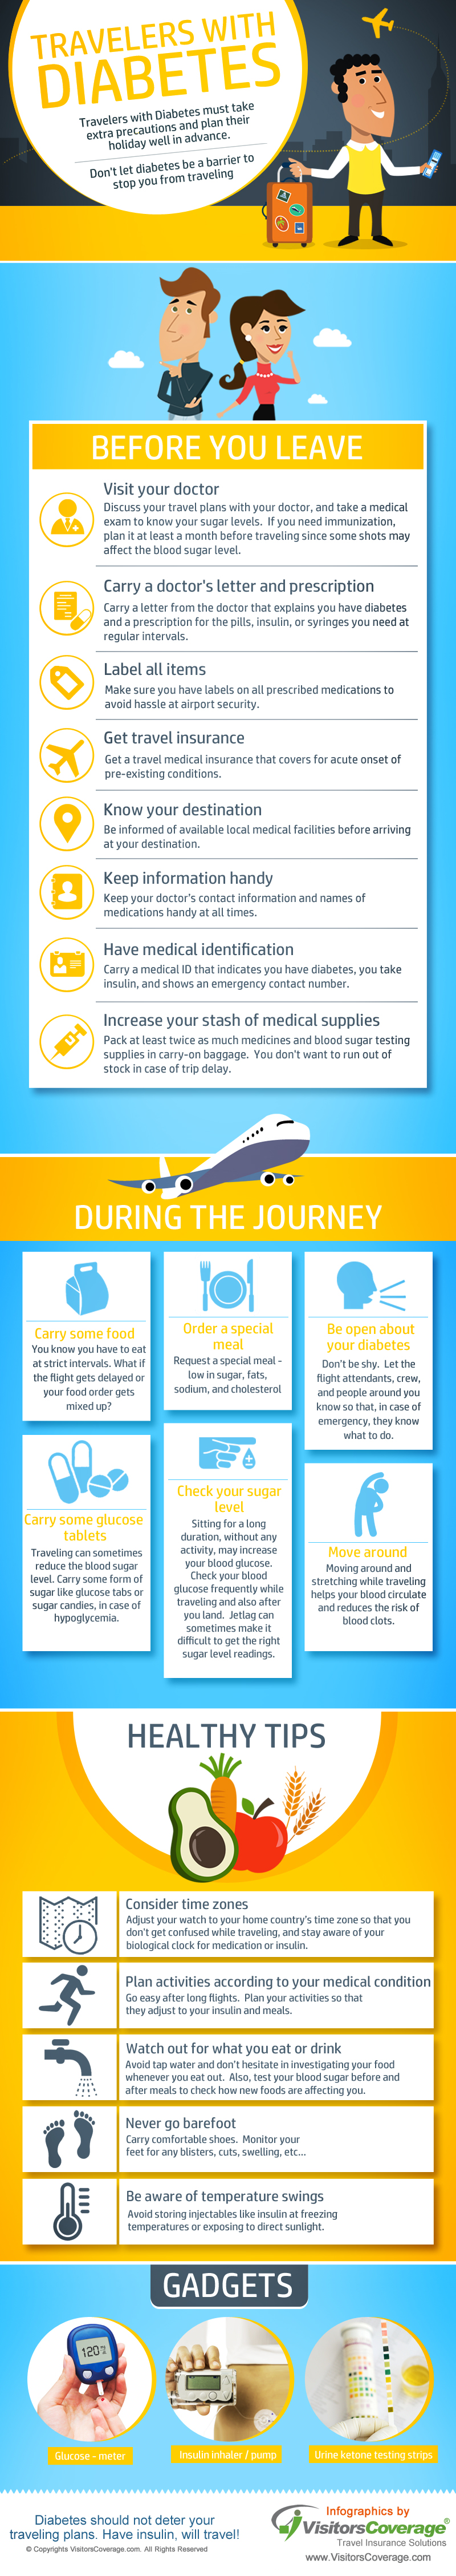 Travel Tips for Travelers with Diabetes